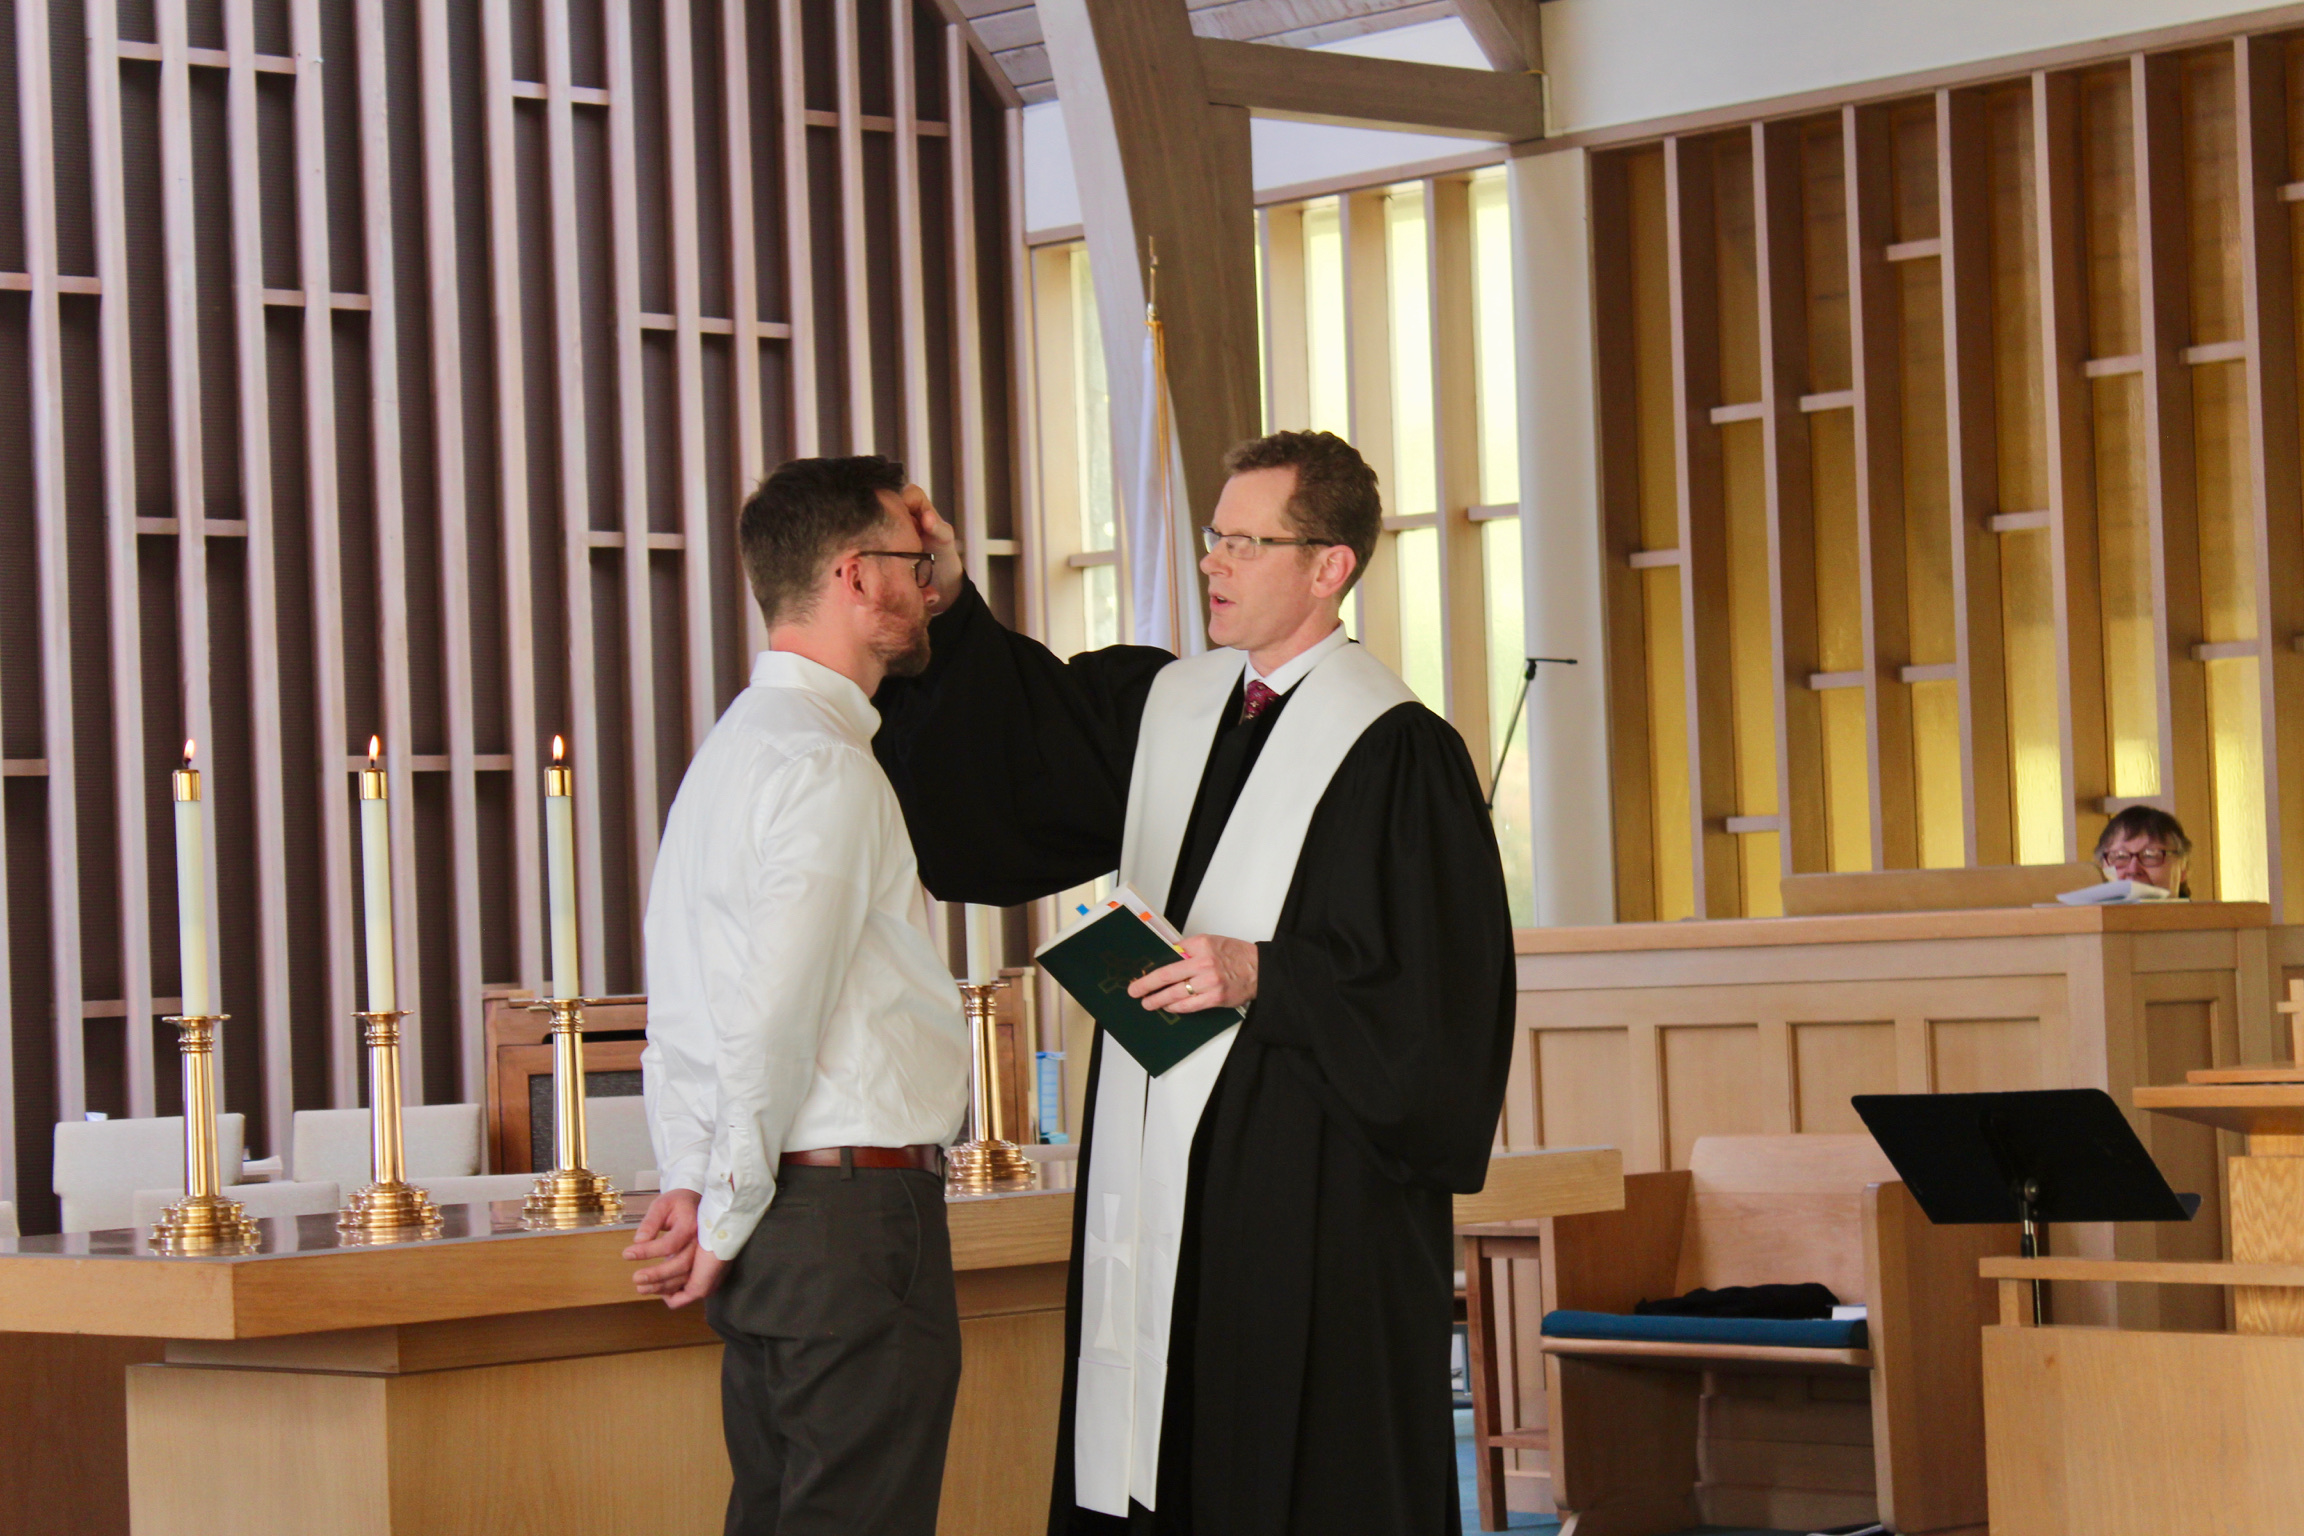 Rev. Greg Ellis performs ordination service for Seth Thomas